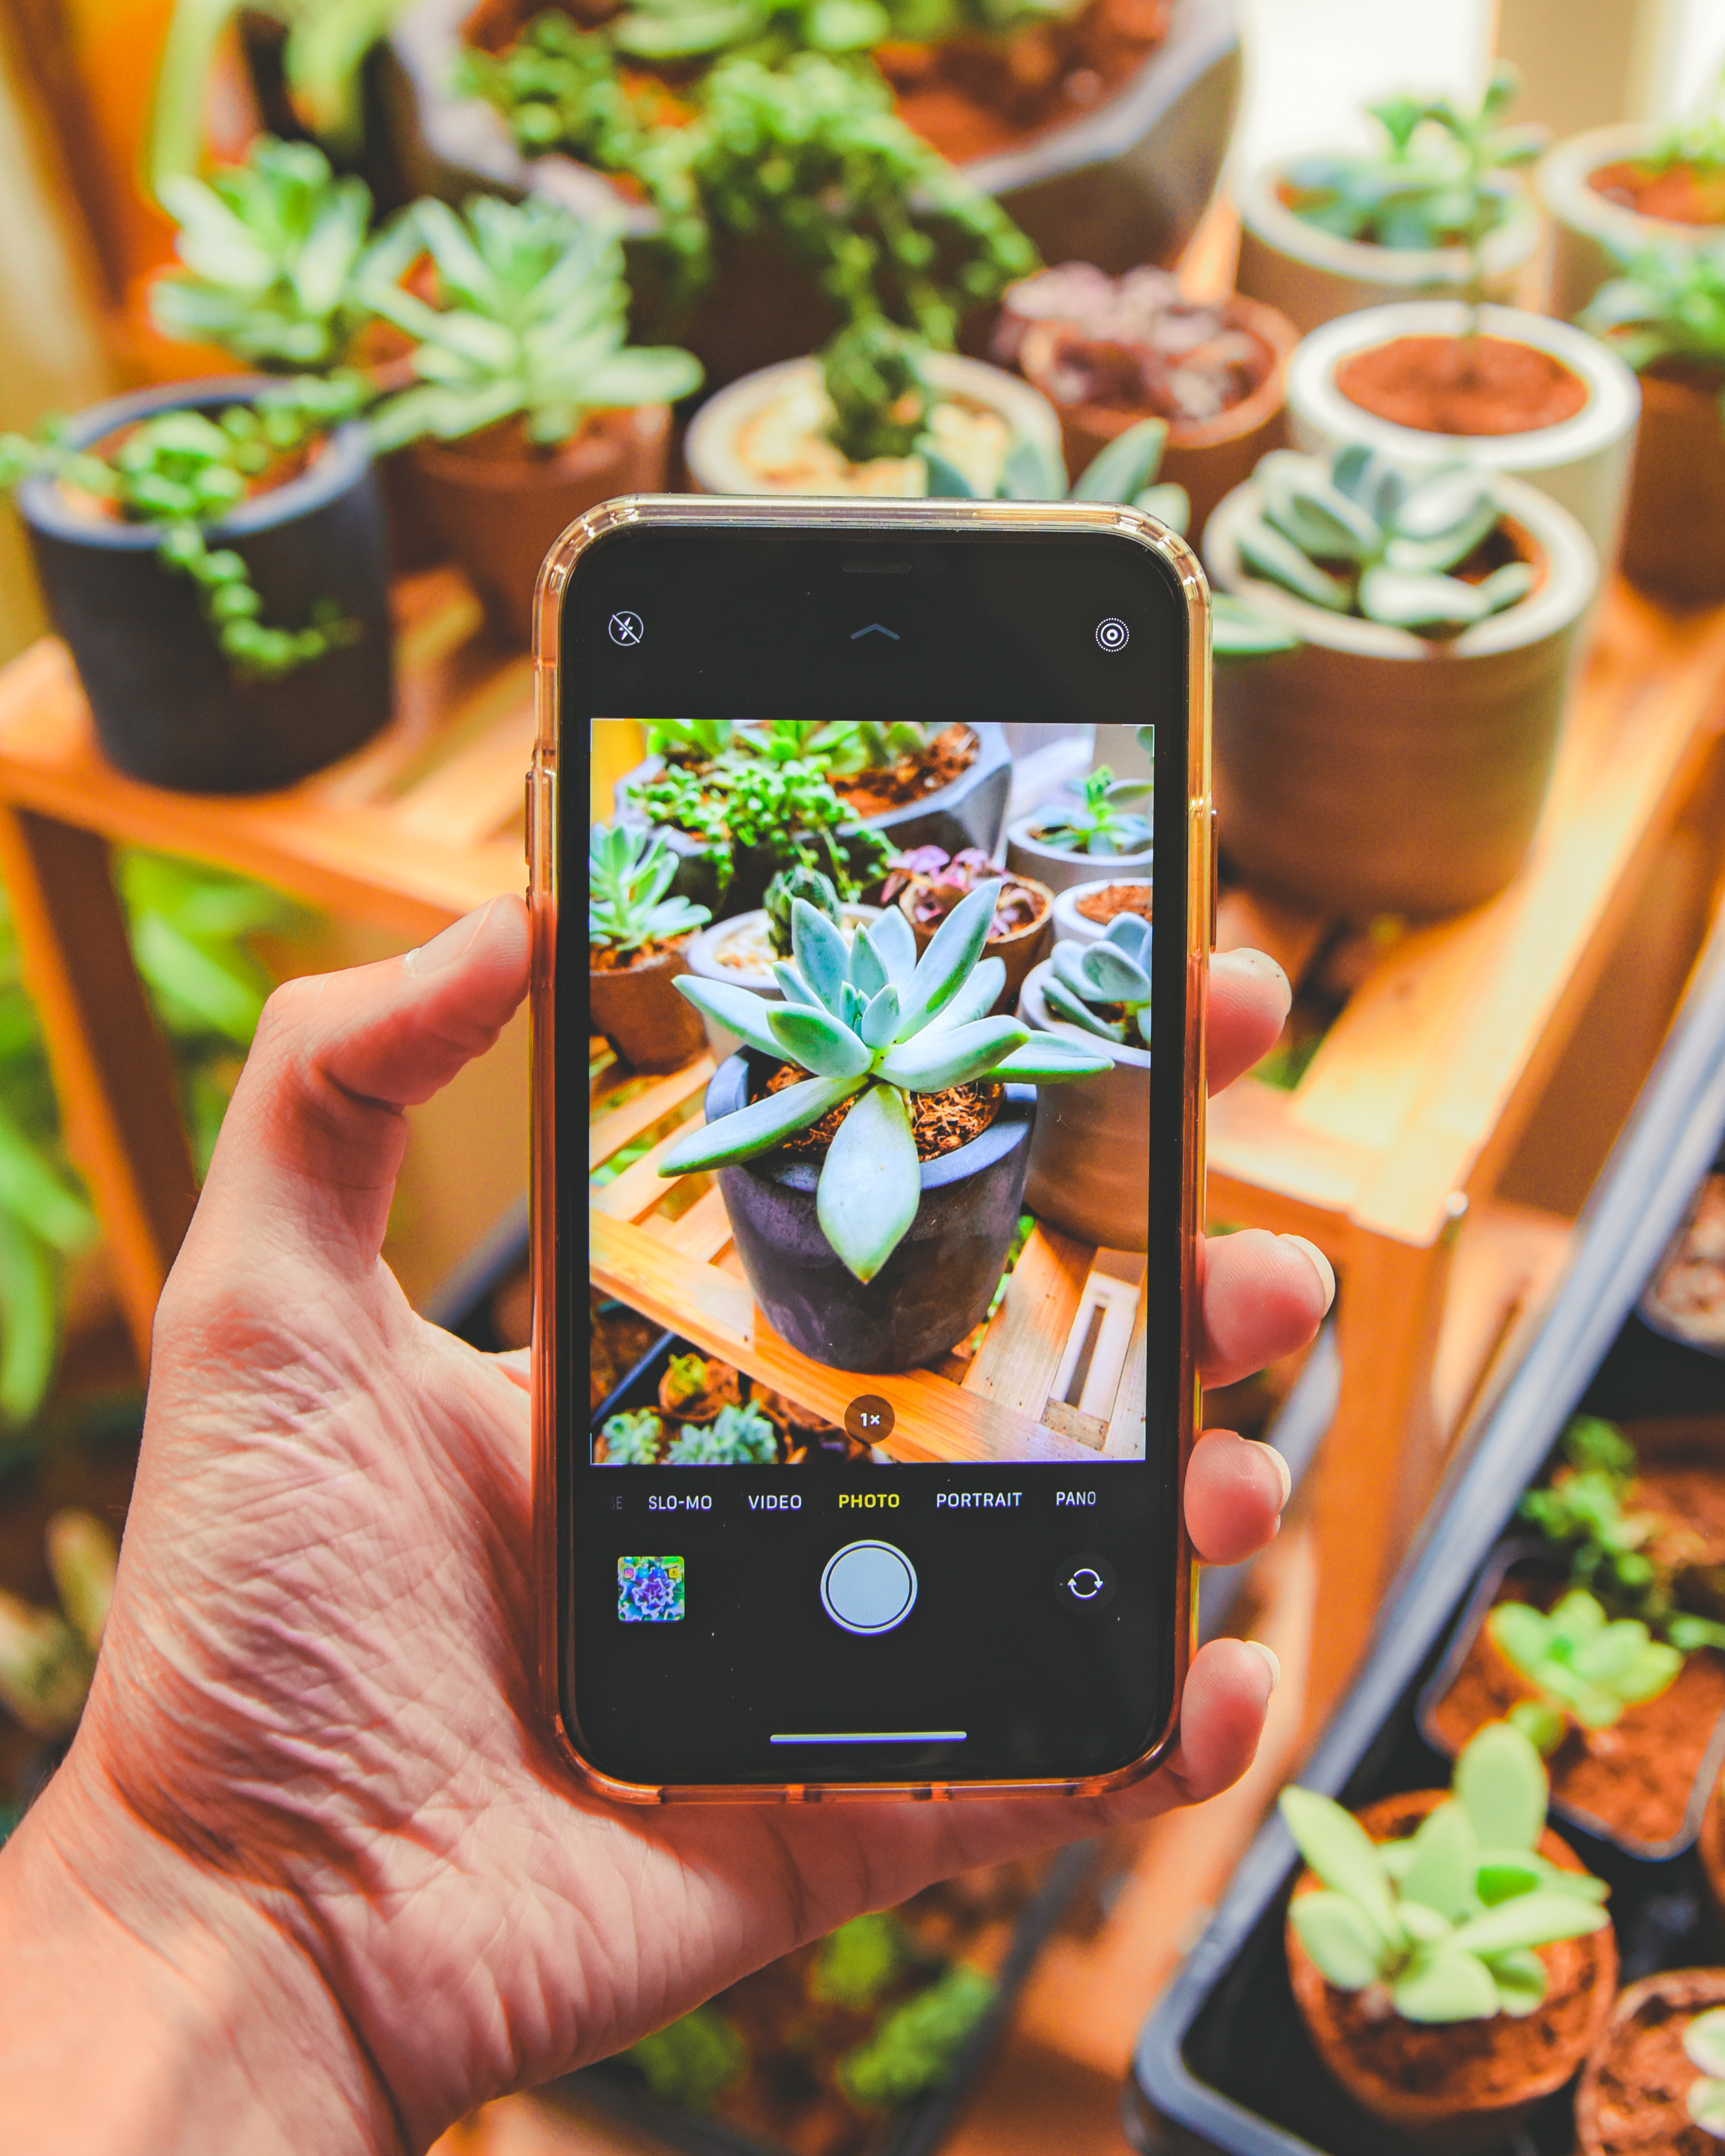 5 Expert Tips to Capture Your Succulents' Best Angles